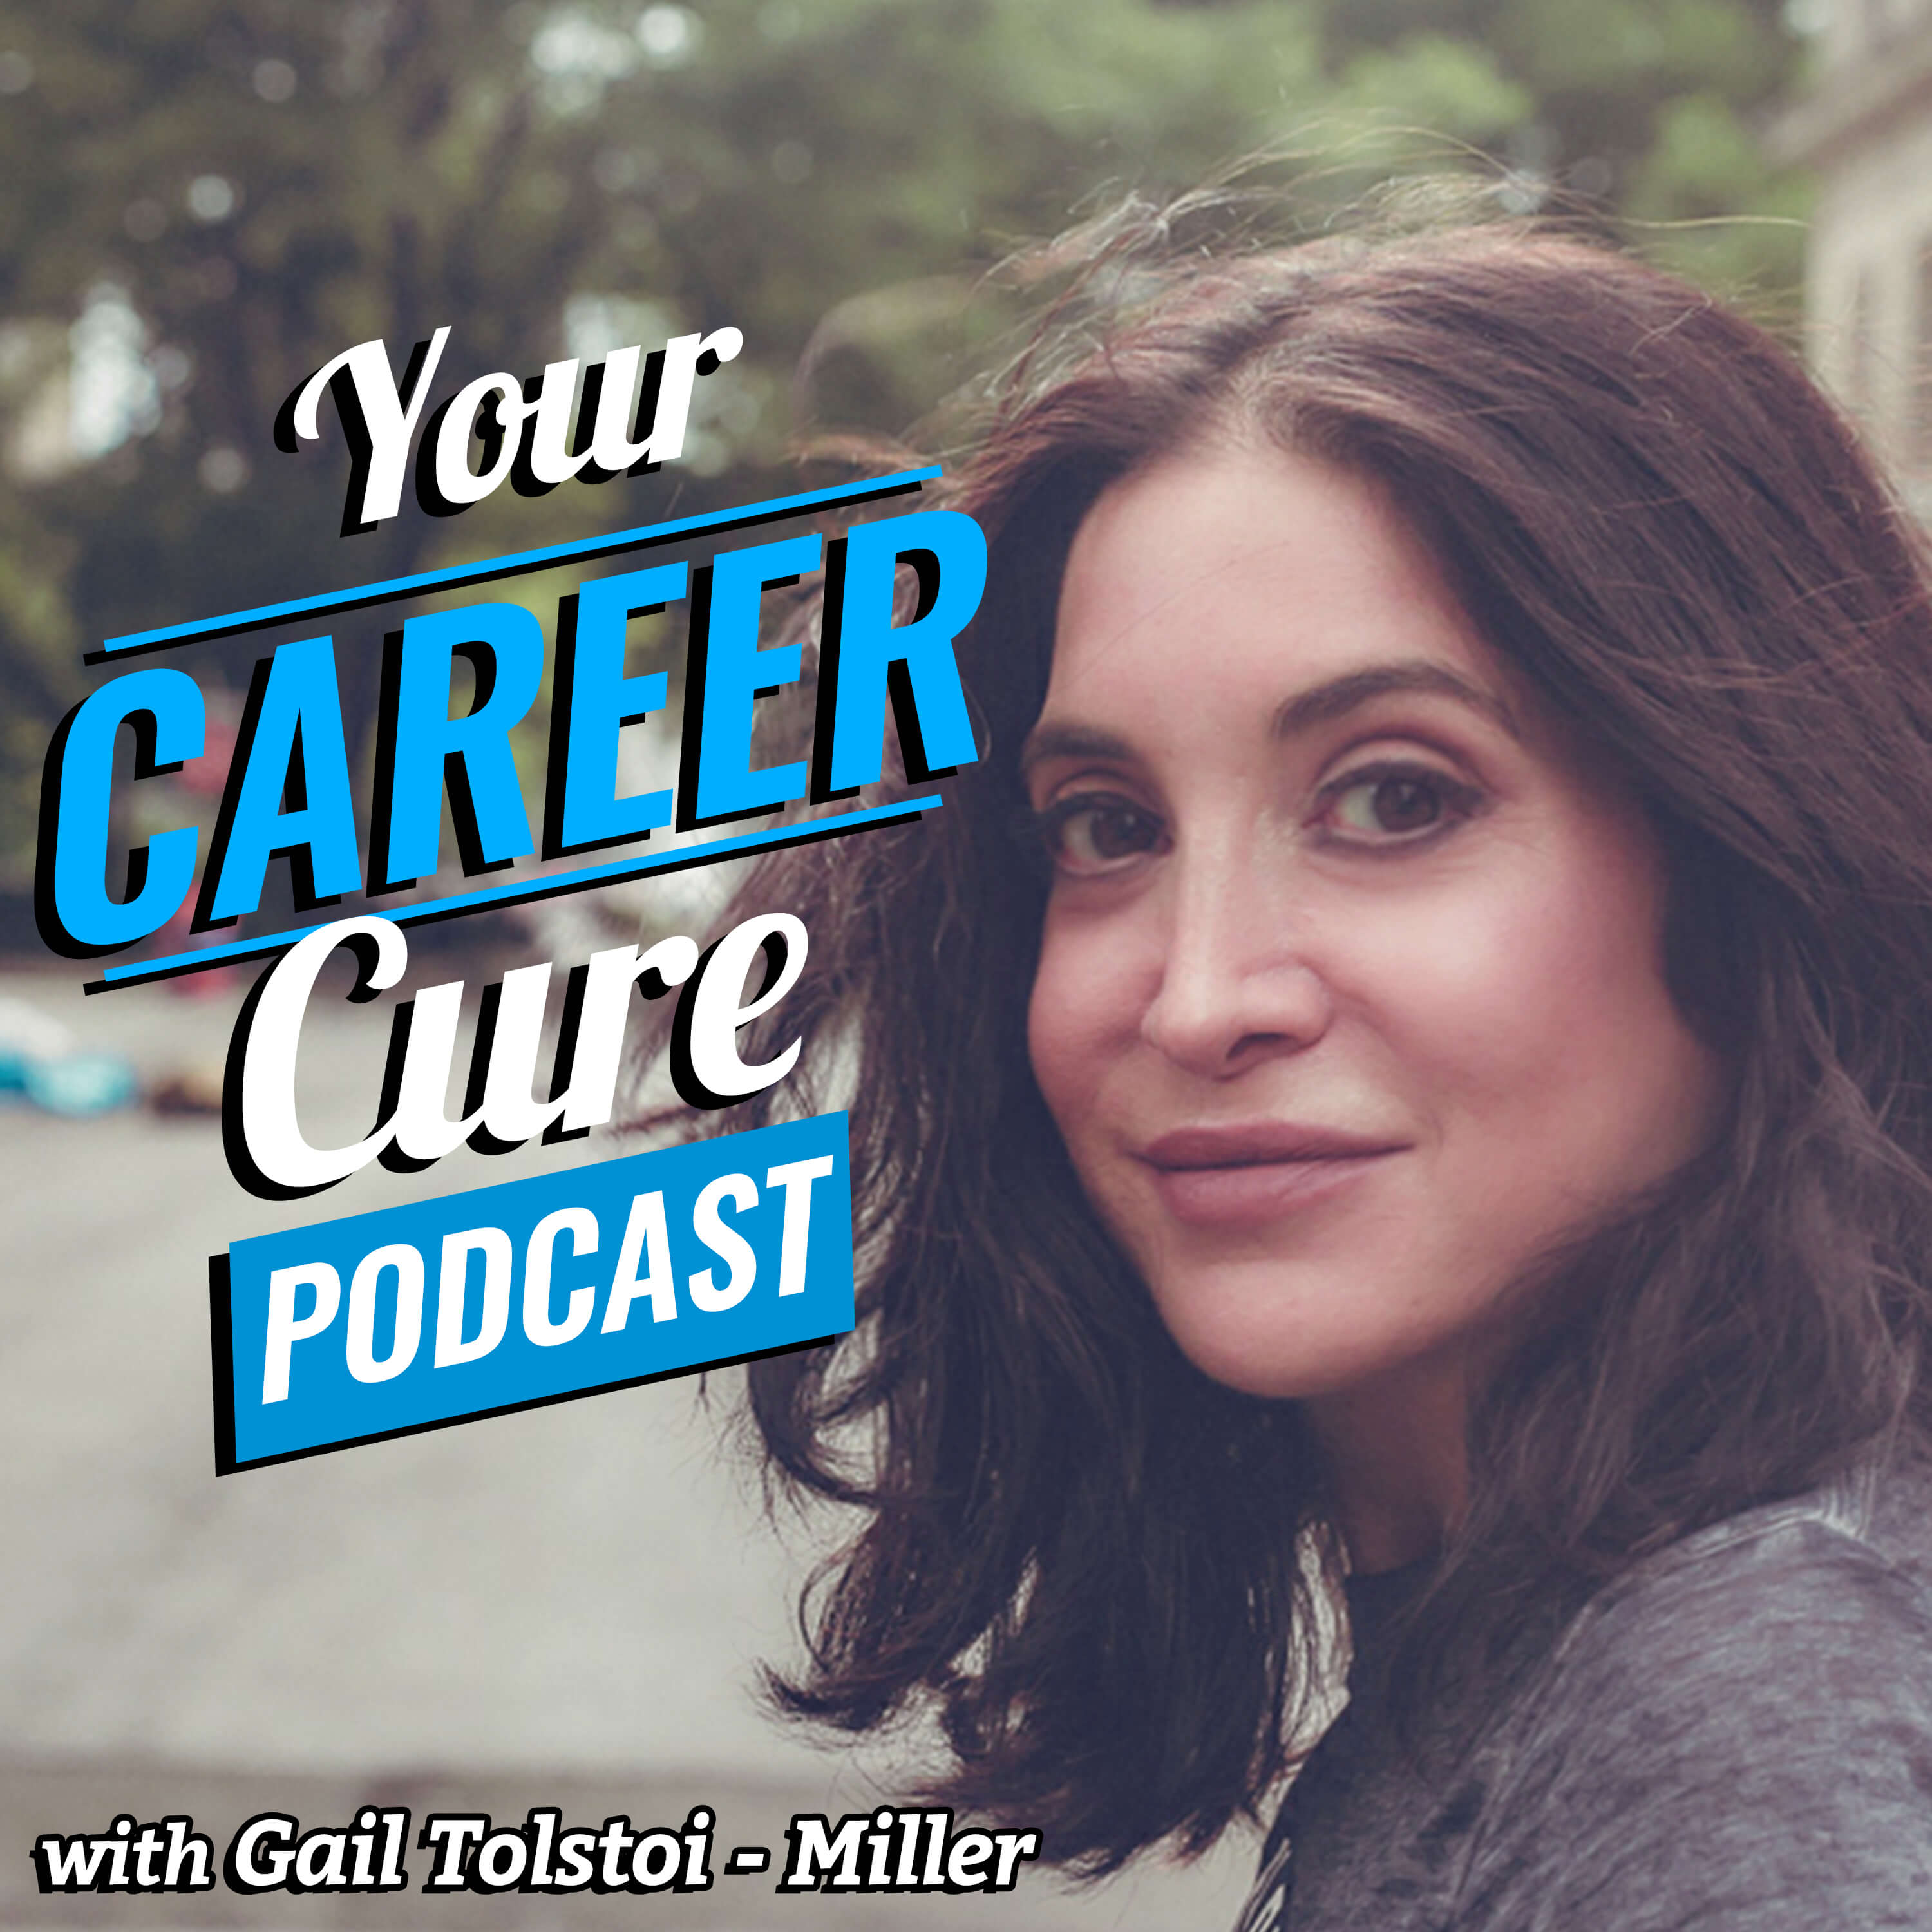 Artwork for Gail Tolstoi-Miller introduction to Your Career Cure Podcast